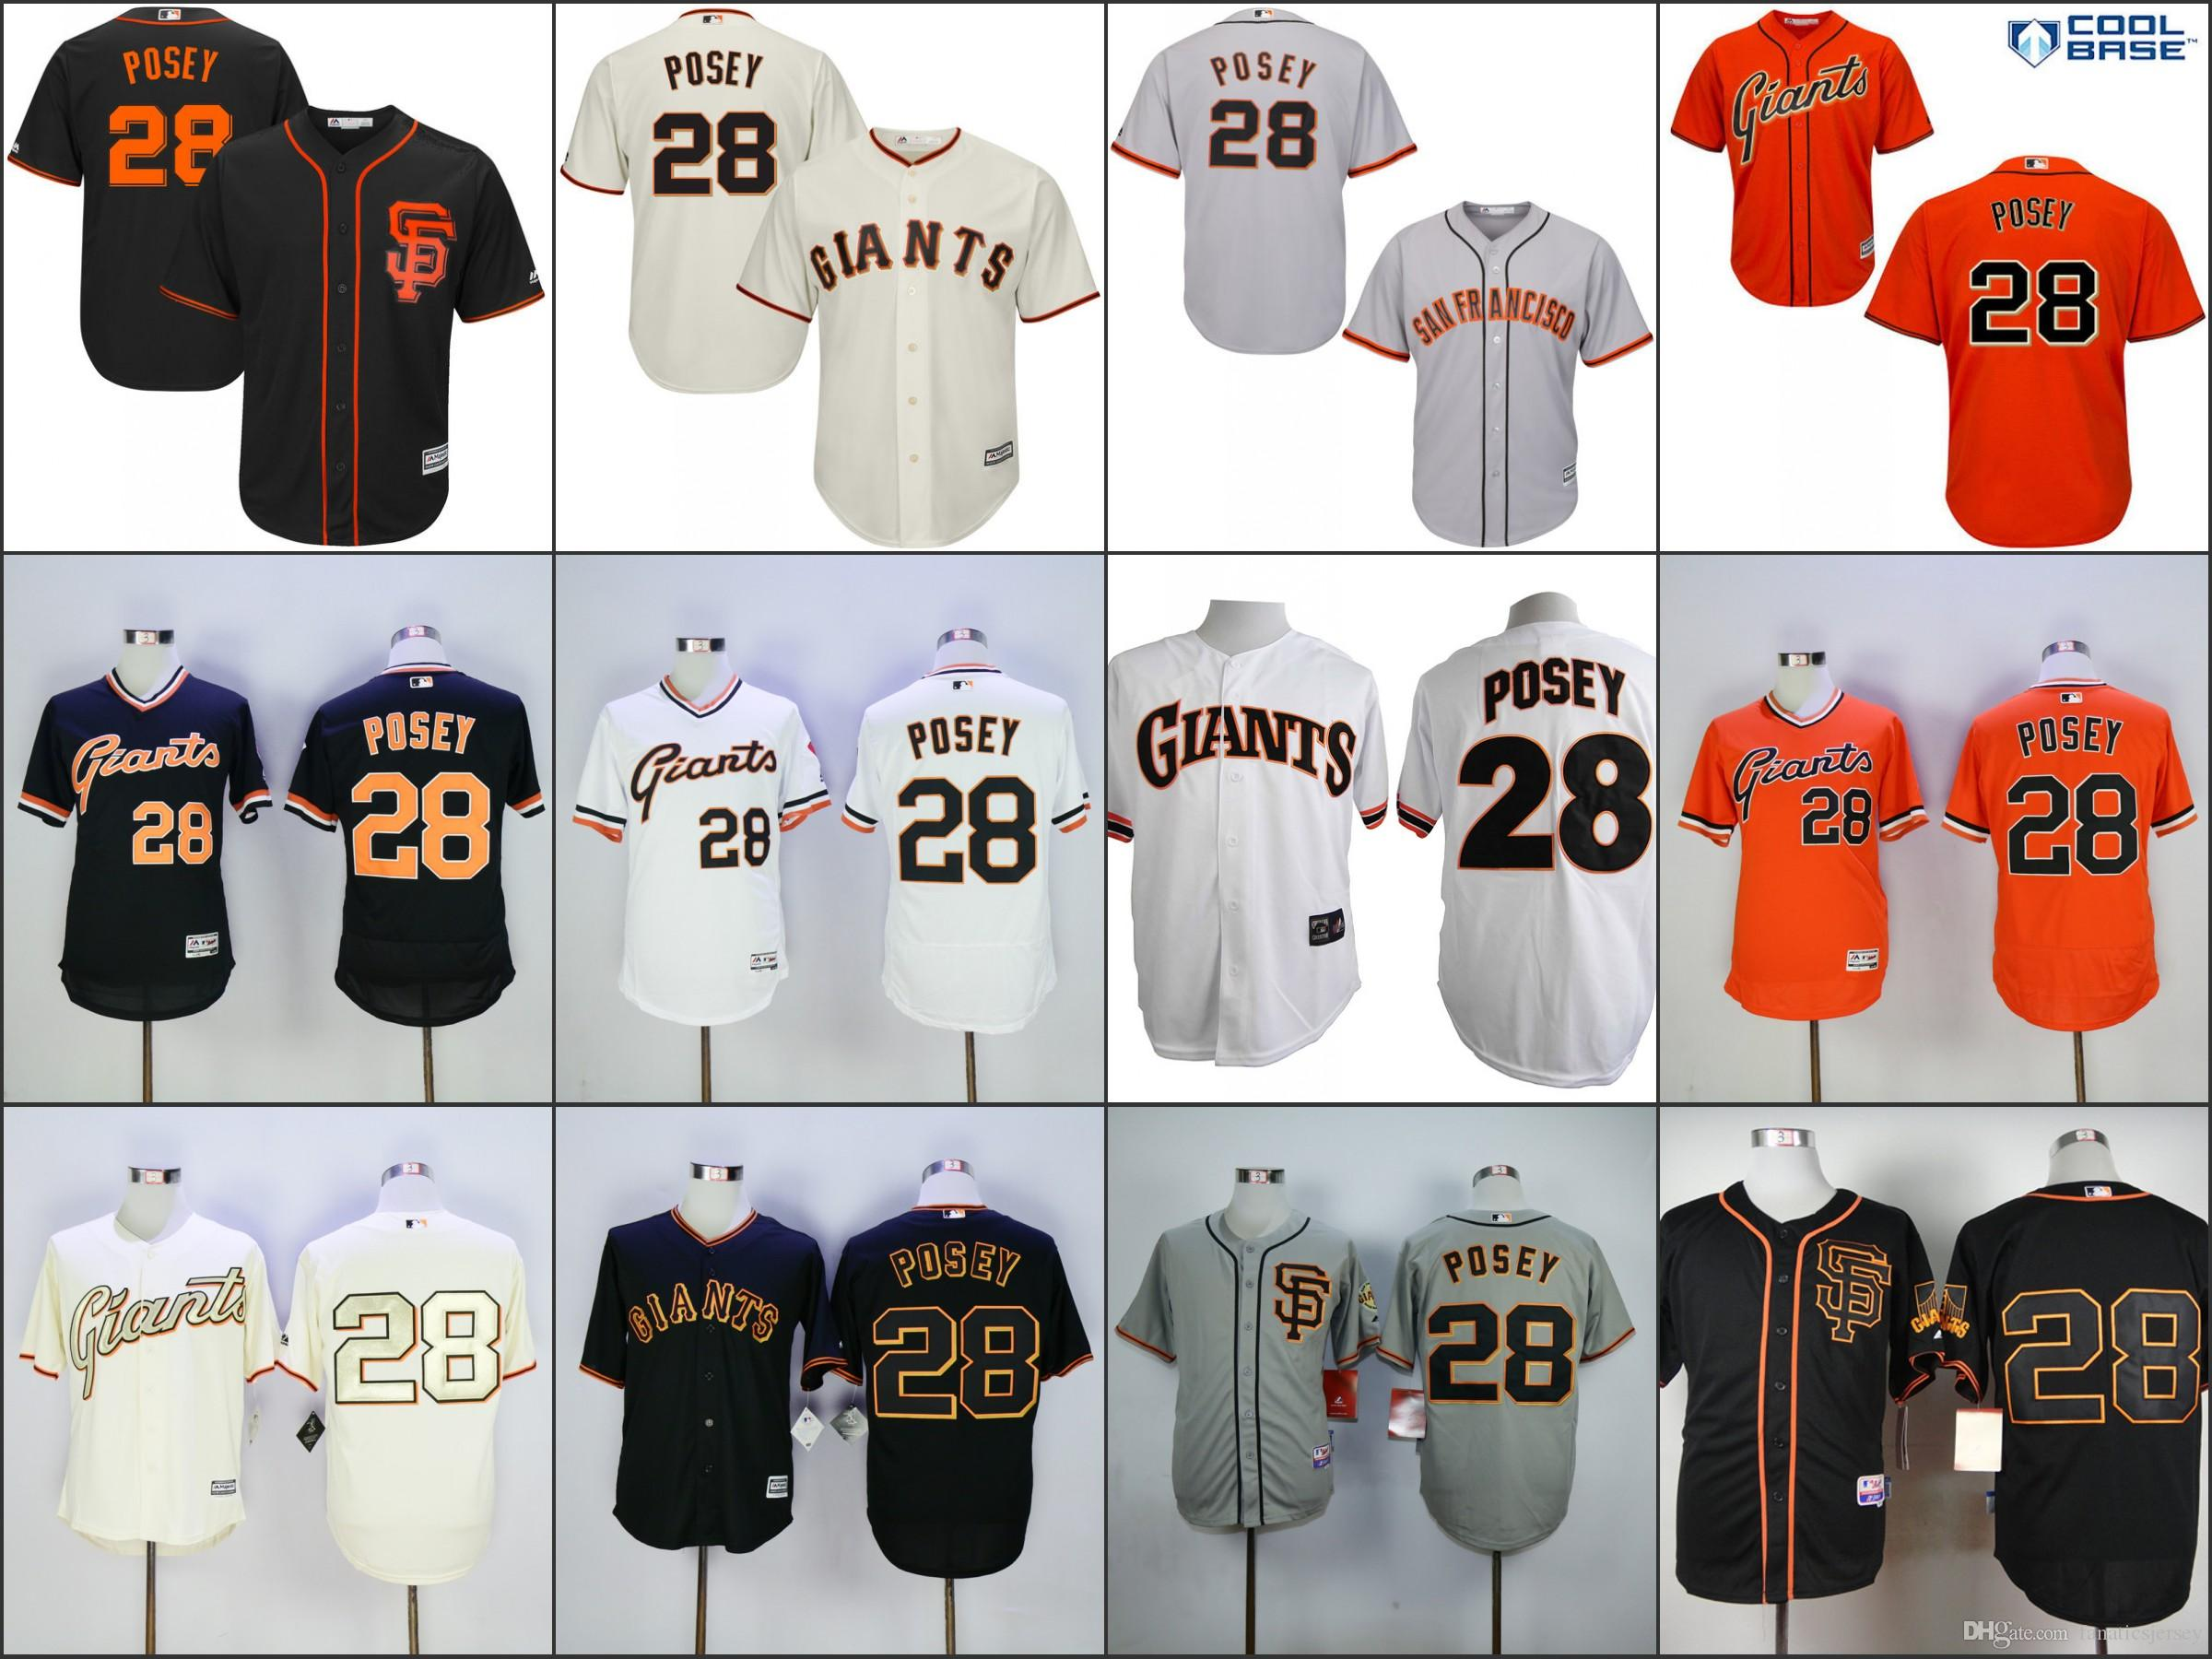 sale retailer 55c9a 87a43 28 buster posey jersey